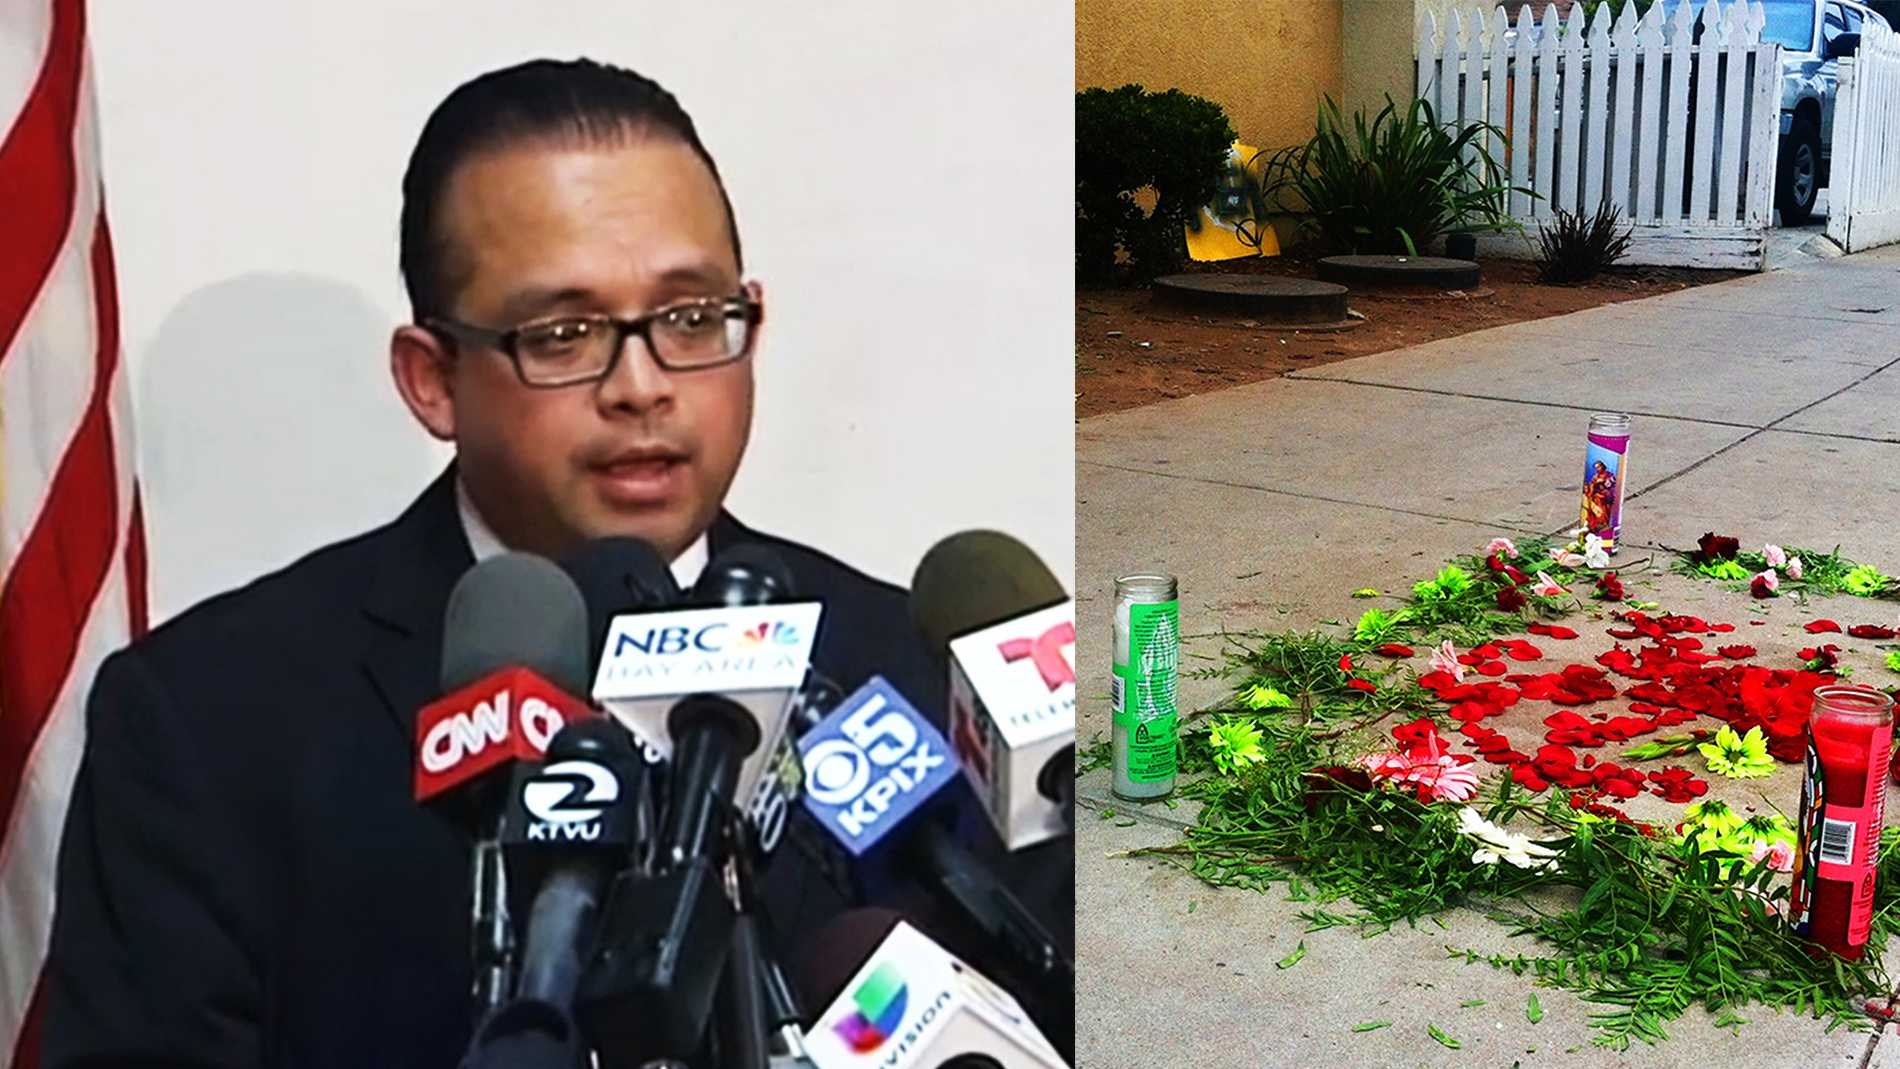 State Assemblyman Luis Alejo spoke in Salinas Thursday, left. A memorial, right, was made where Carlos Mejia died Tuesday.